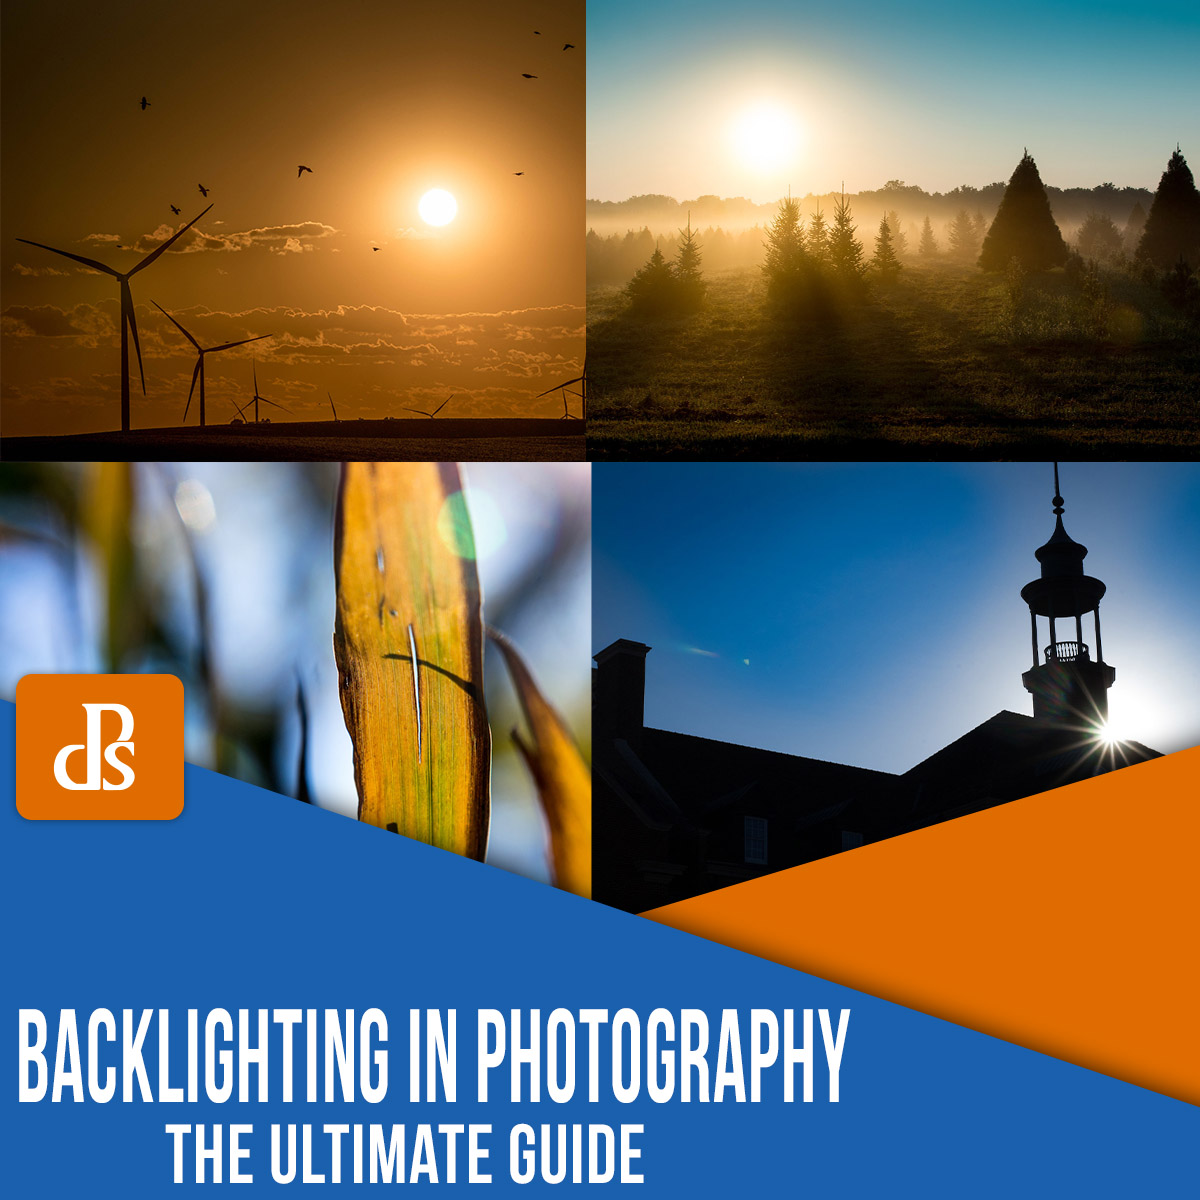 backlighting in photography the ultimate guide